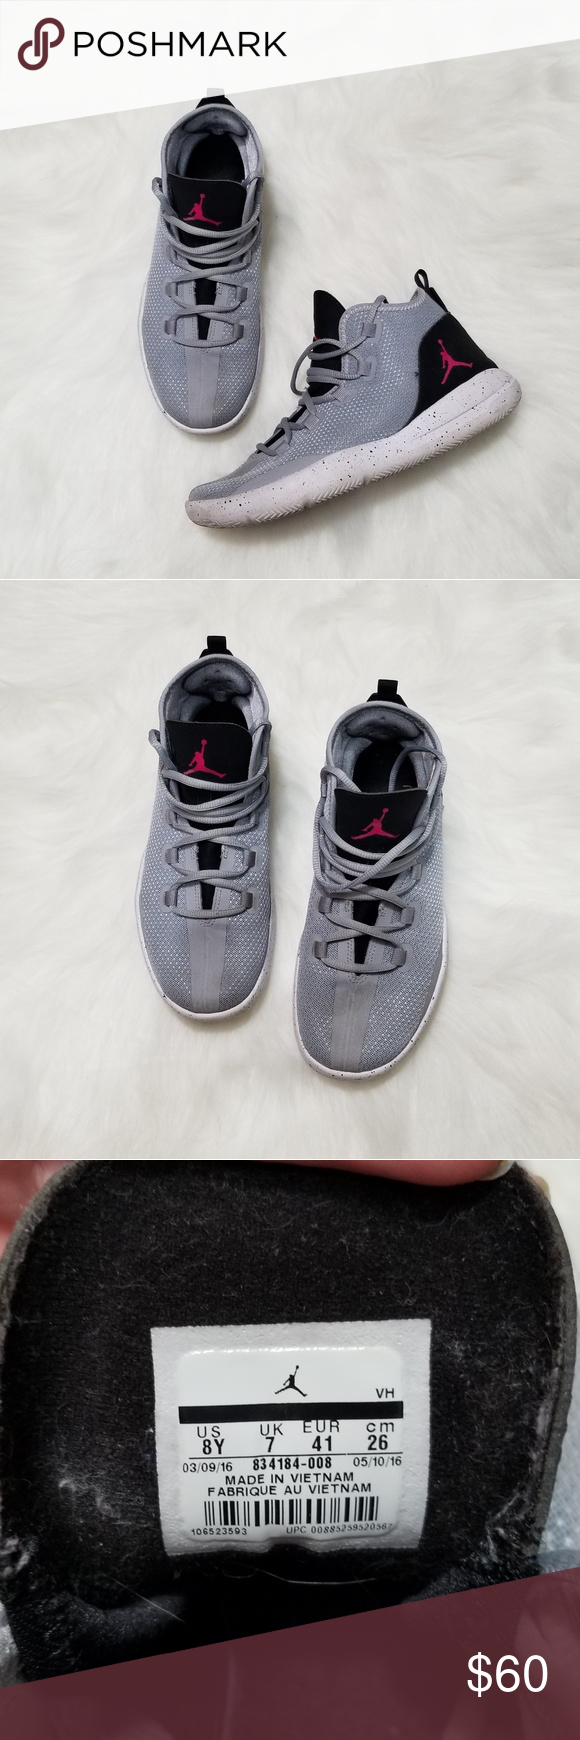 sports shoes 5bfe2 d7d50 Nike Air Jordan Reveal GG shoes Wolf Grey and black with pink Jordan symbol  Gently used One scuff shown in last photo Nike Shoes Sneakers